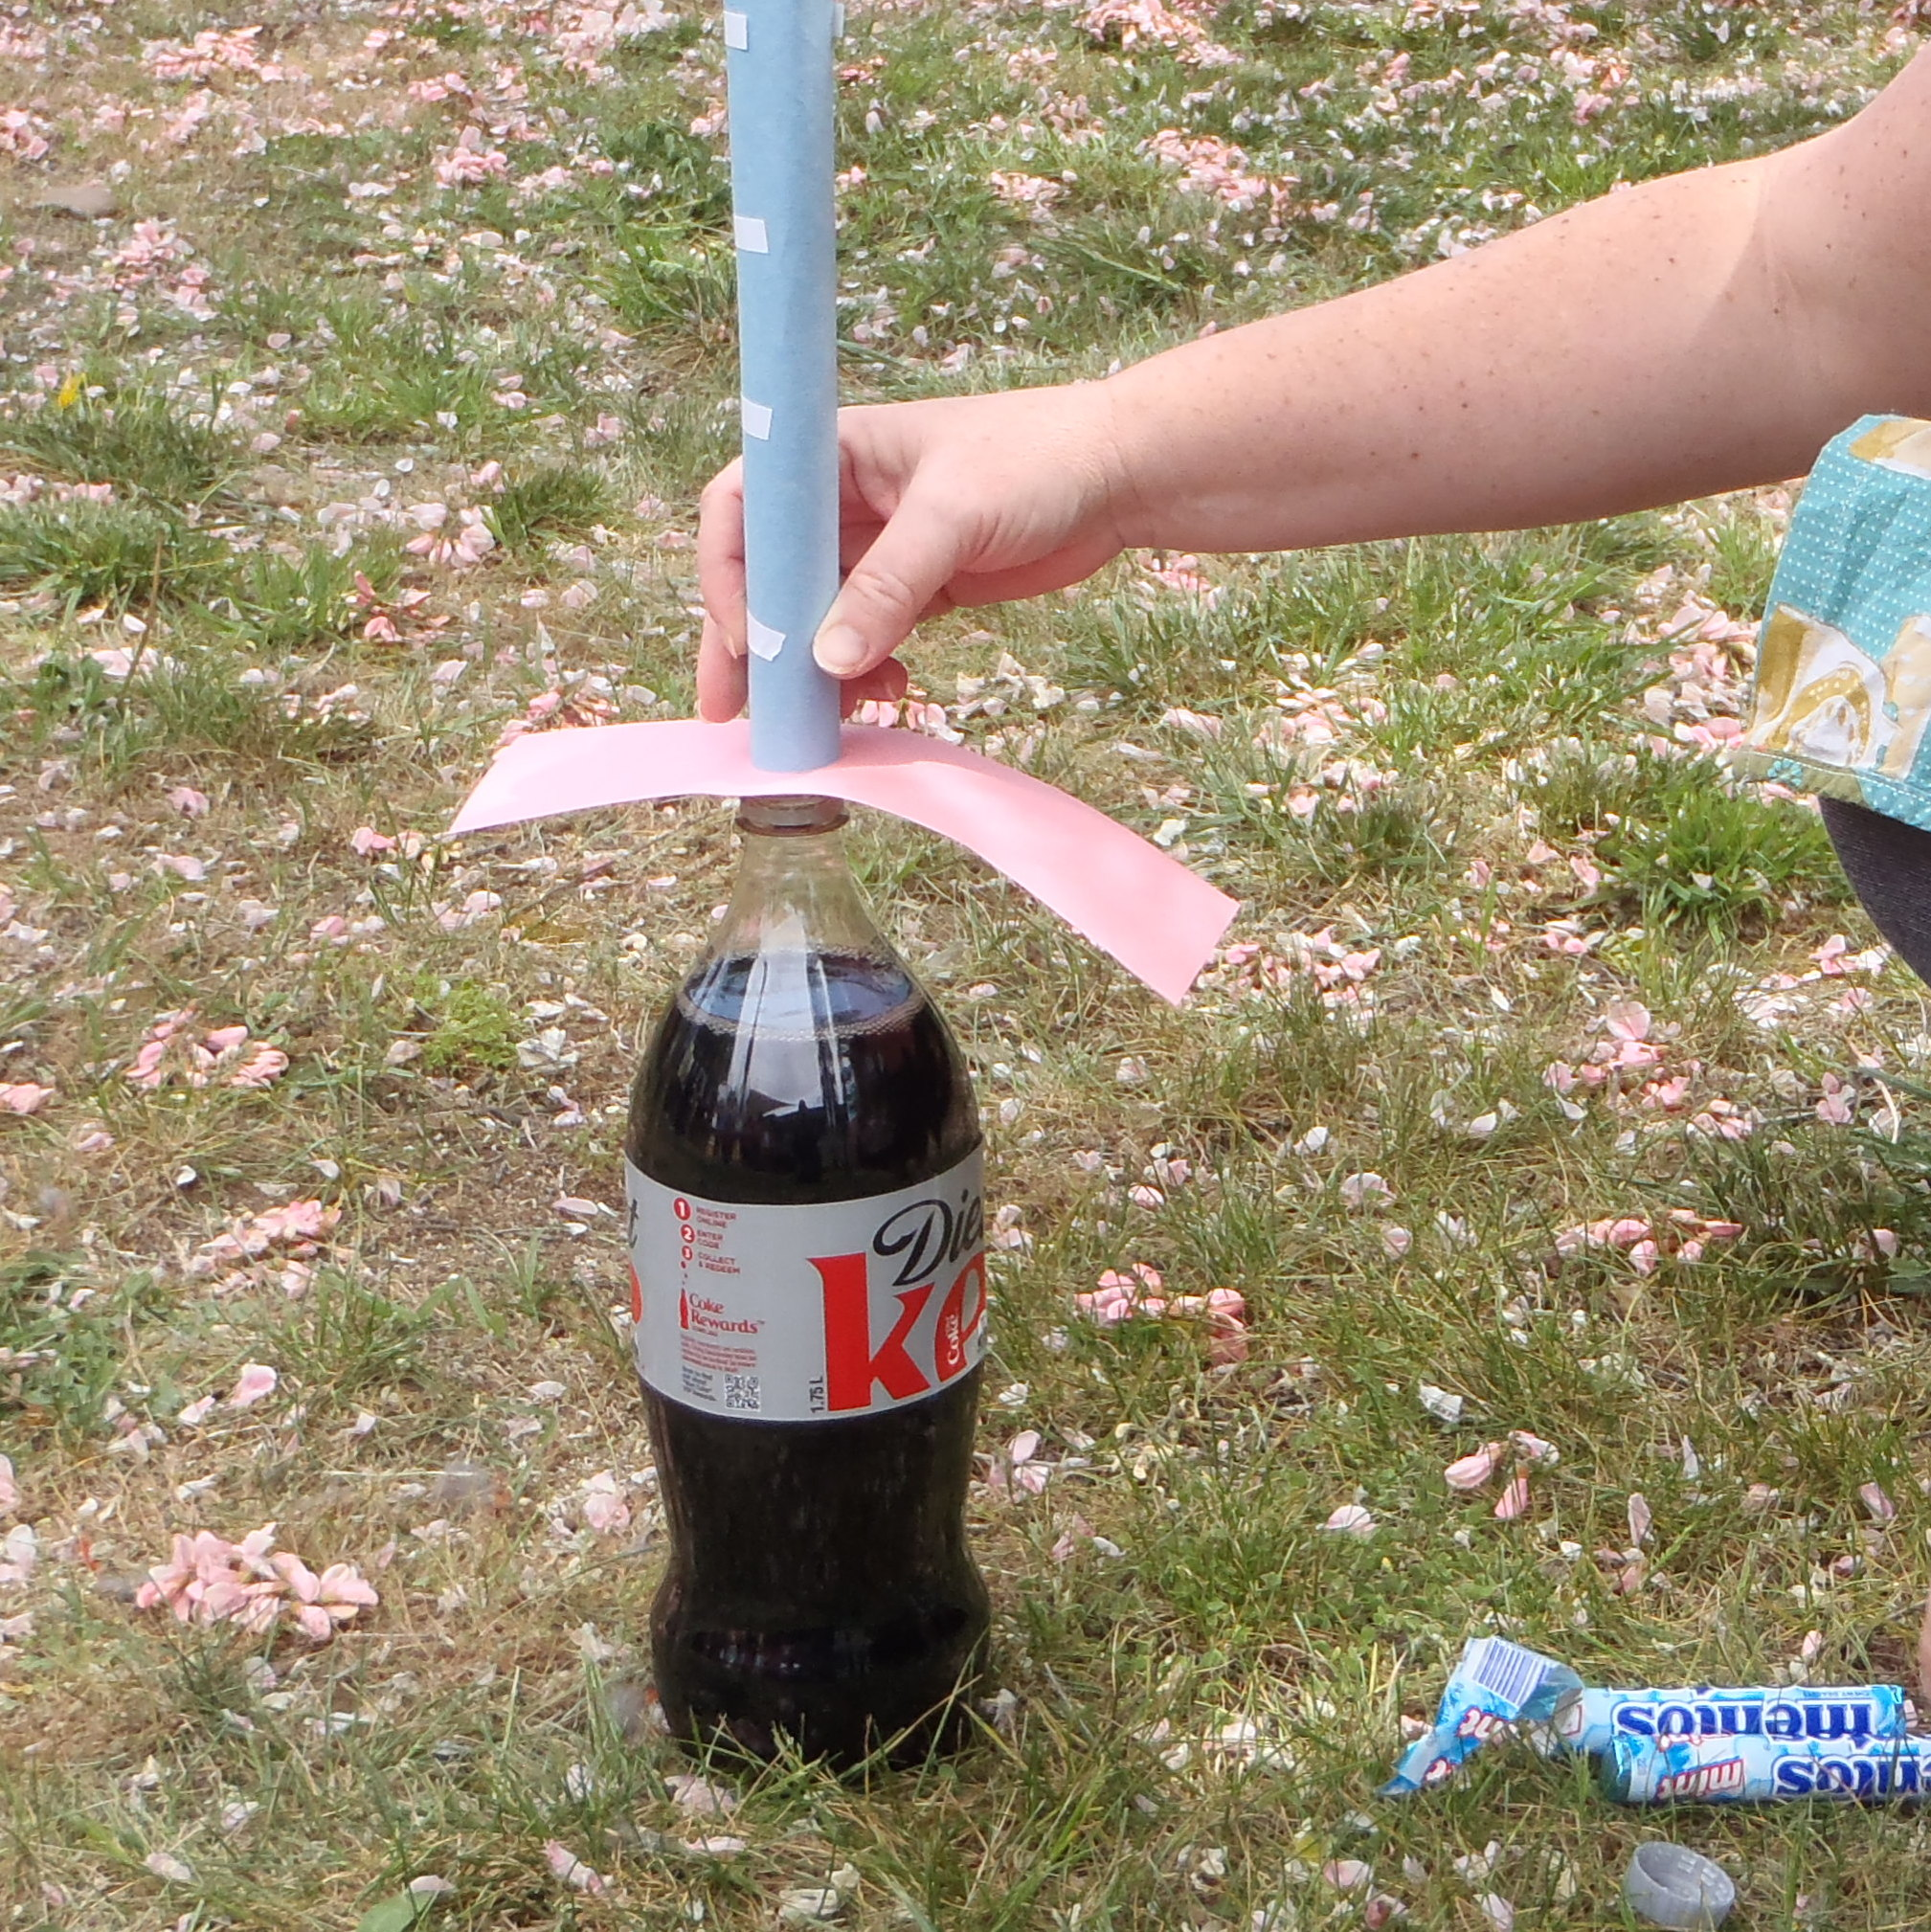 an experiment mentos geyser 2015-08-27  diet coke and mentos formula  and mentos geyser or mentos eruption)  be amazing toys-geyser tubes-perform the classic diet coke & mentos experiment.